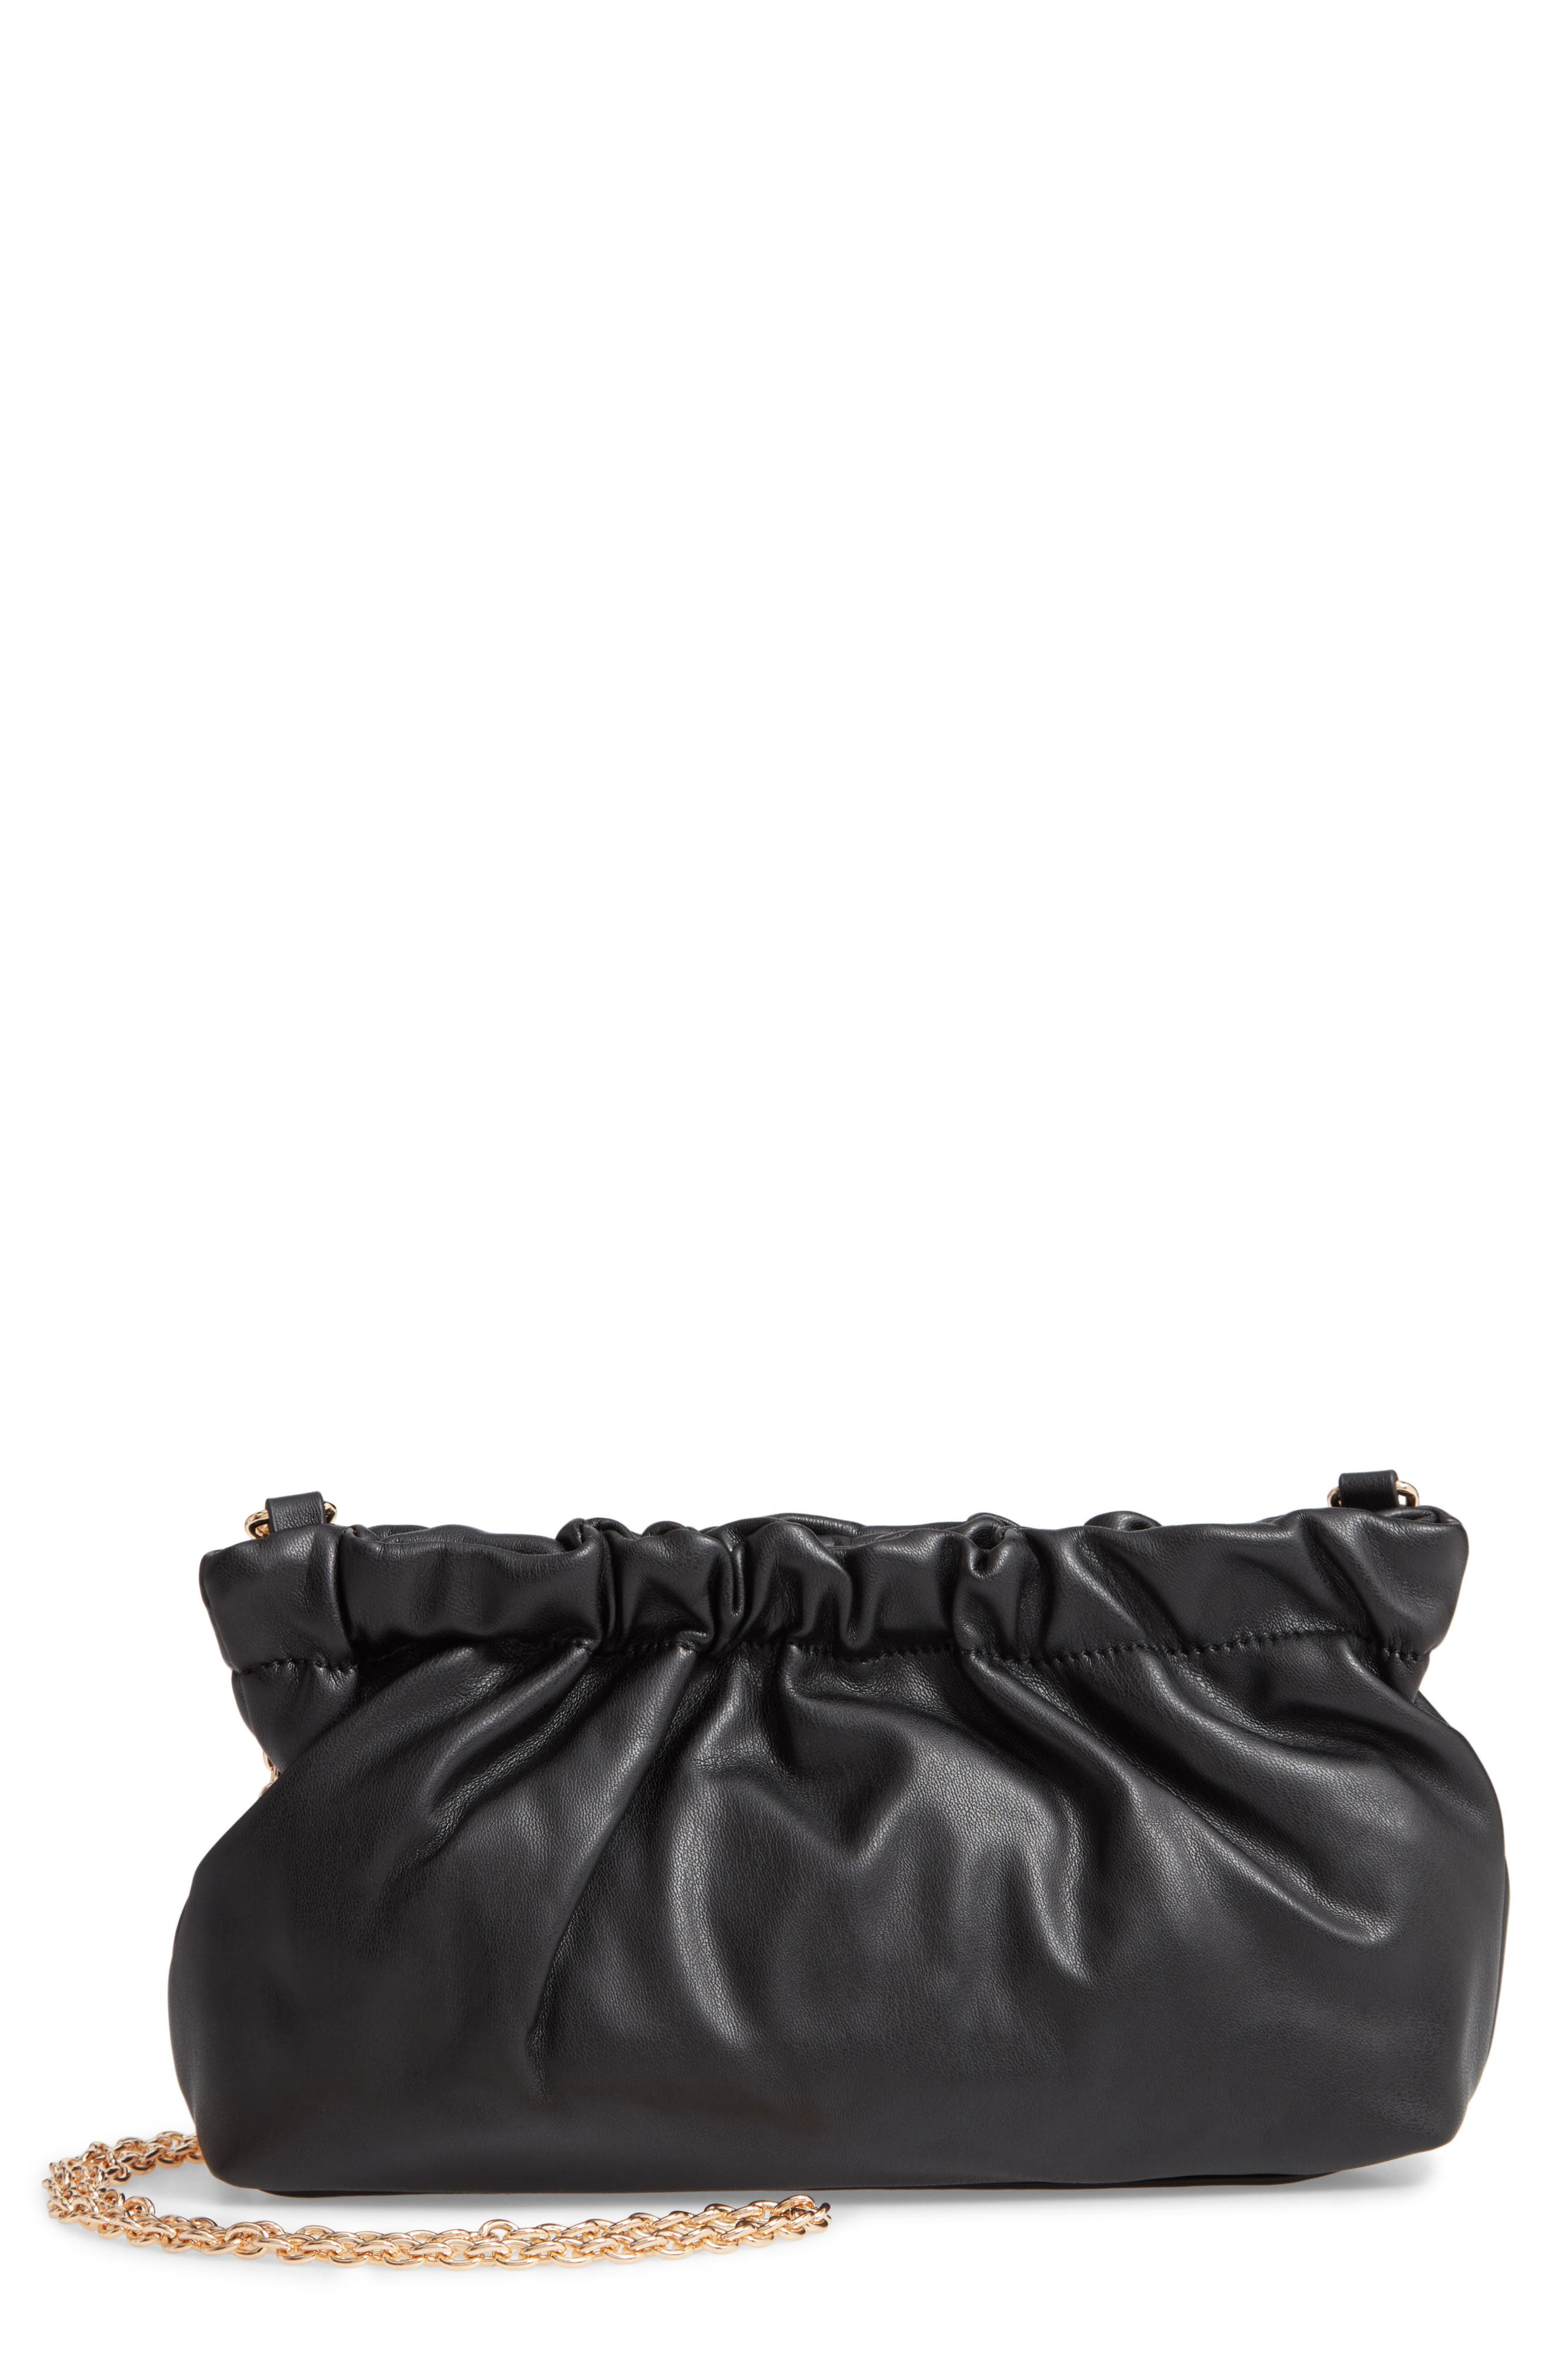 Tyll Faux Leather Clutch,                             Main thumbnail 1, color,                             BLACK